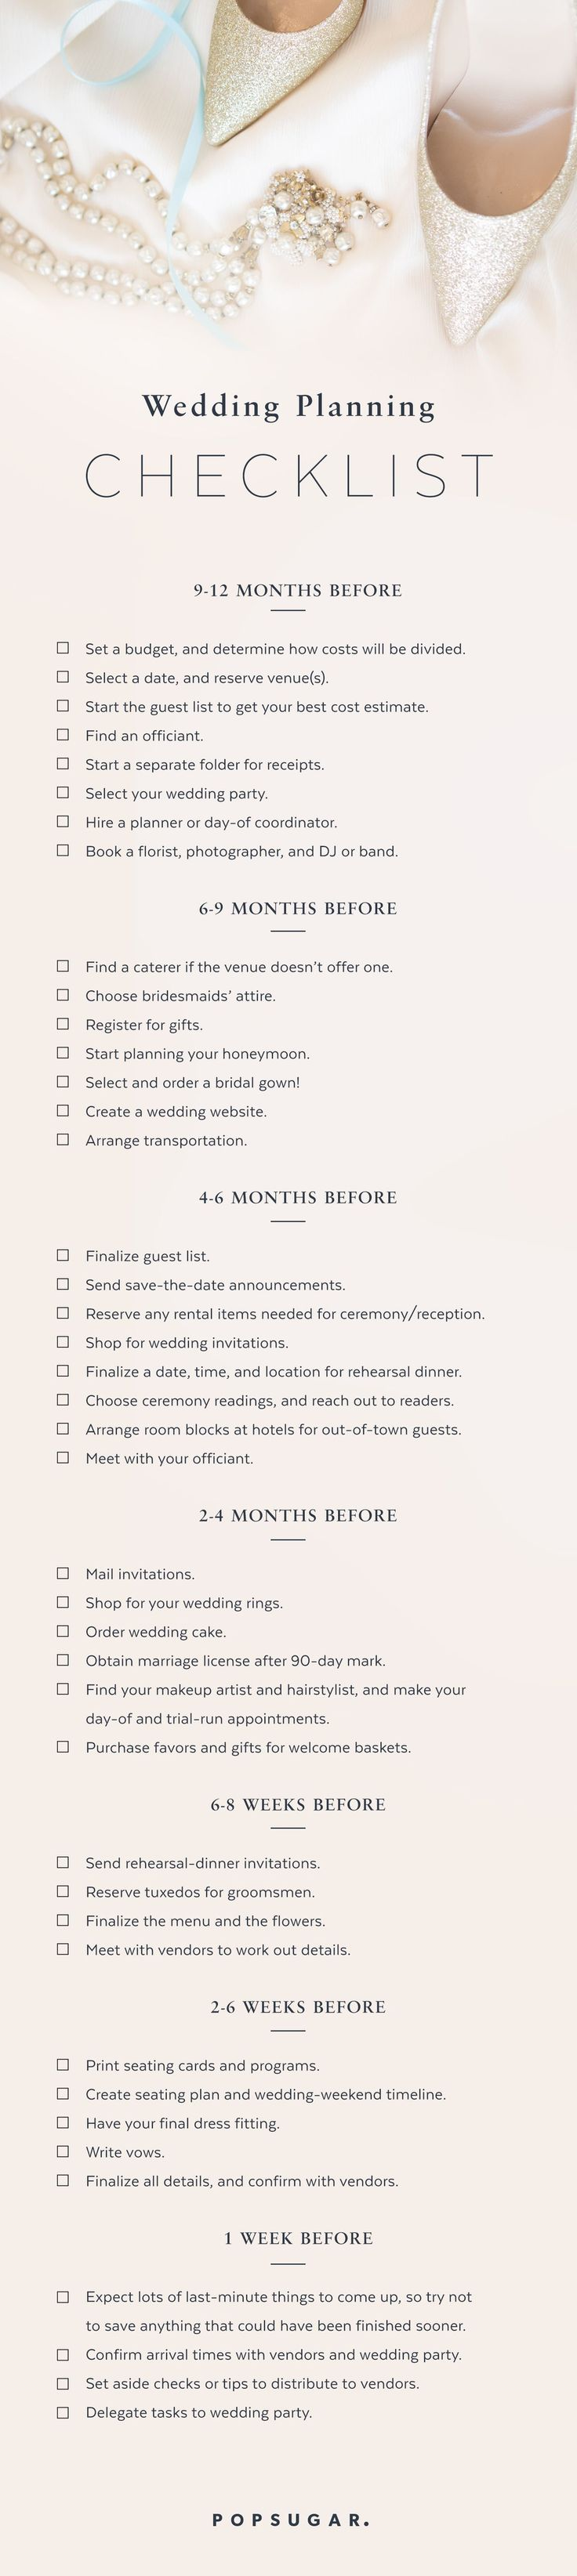 It's overwhelming when you're not sure what's next on the to-do list, so I've created a general timeline for brides out there who need the reminders or reassurance that they're already on track. Please visit my blog for more tips and ideas.